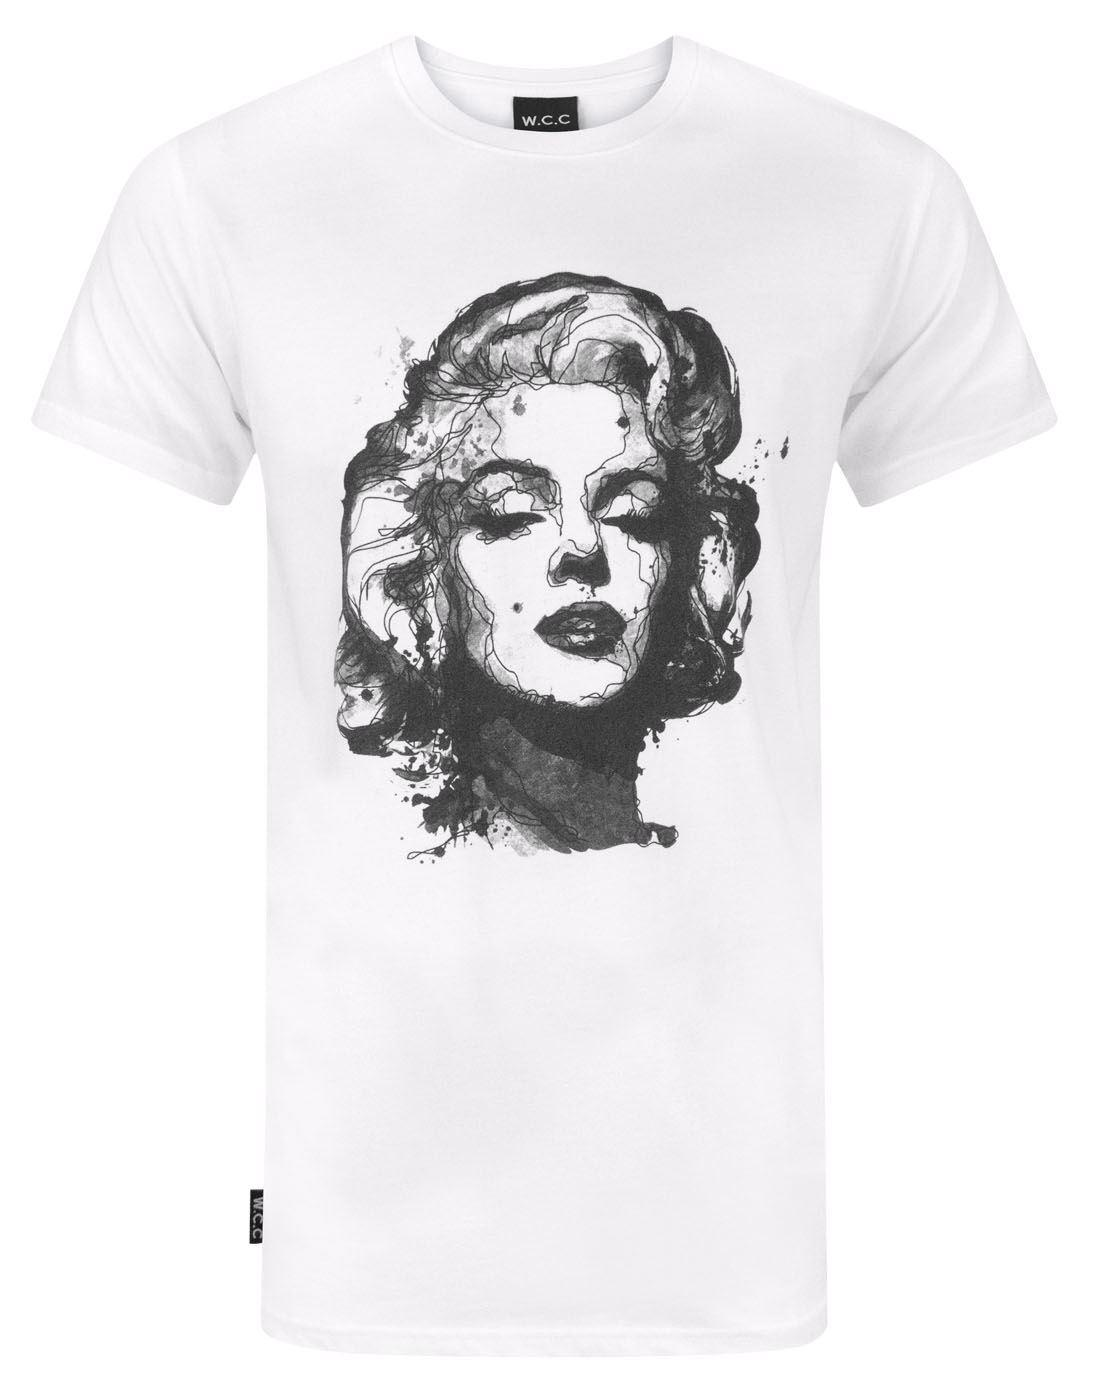 W.C.C Pin Up Fan Art Monroe T-shirt com palangre Inspirado Tops verão fresco Funny T-Shirts